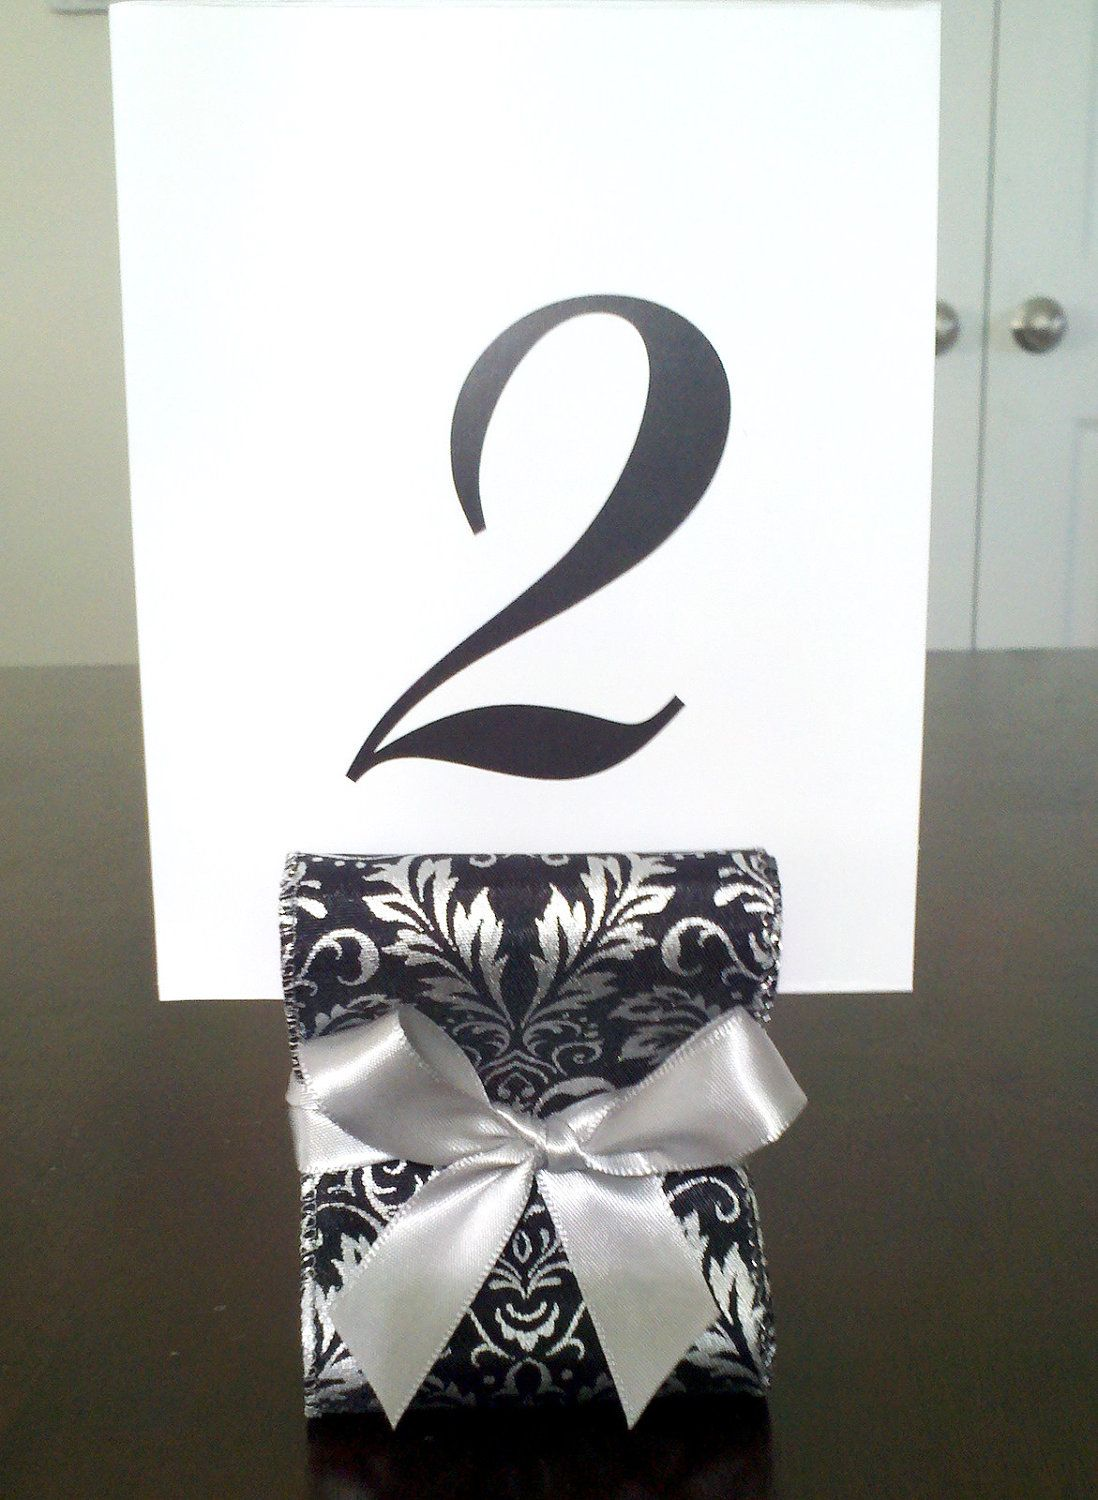 Wedding Table Number Holders - Set of Ten (10) with Black and Silver Damask Satin Ribbon - Customize Accent Ribbon. $35.00, via Etsy.